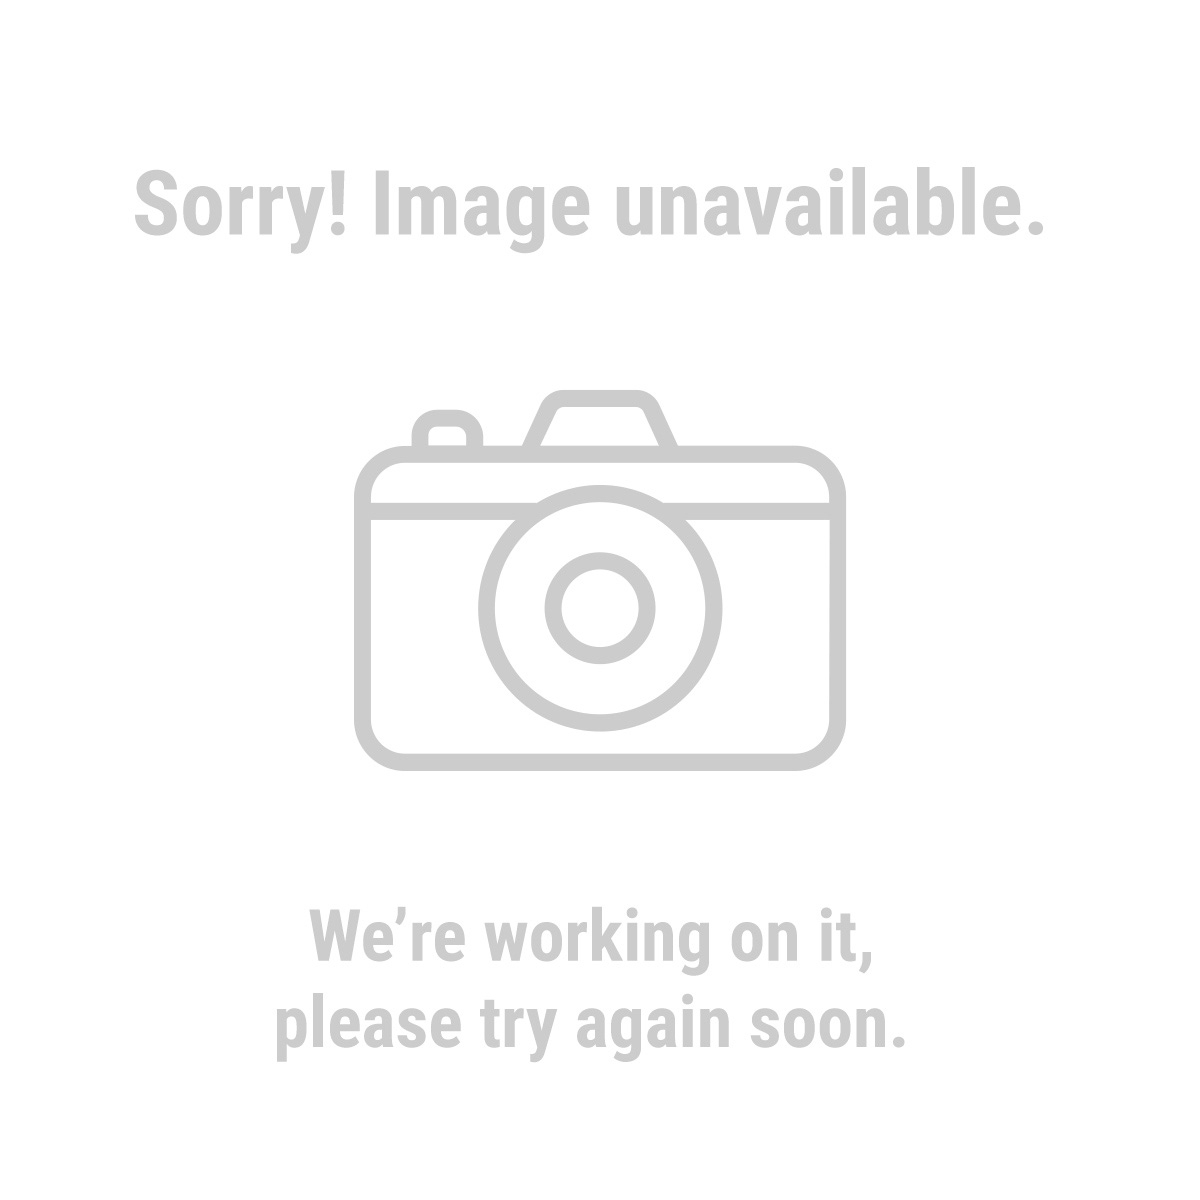 Admiral 62725 12 in. 80T Finishing Circular Saw Blade